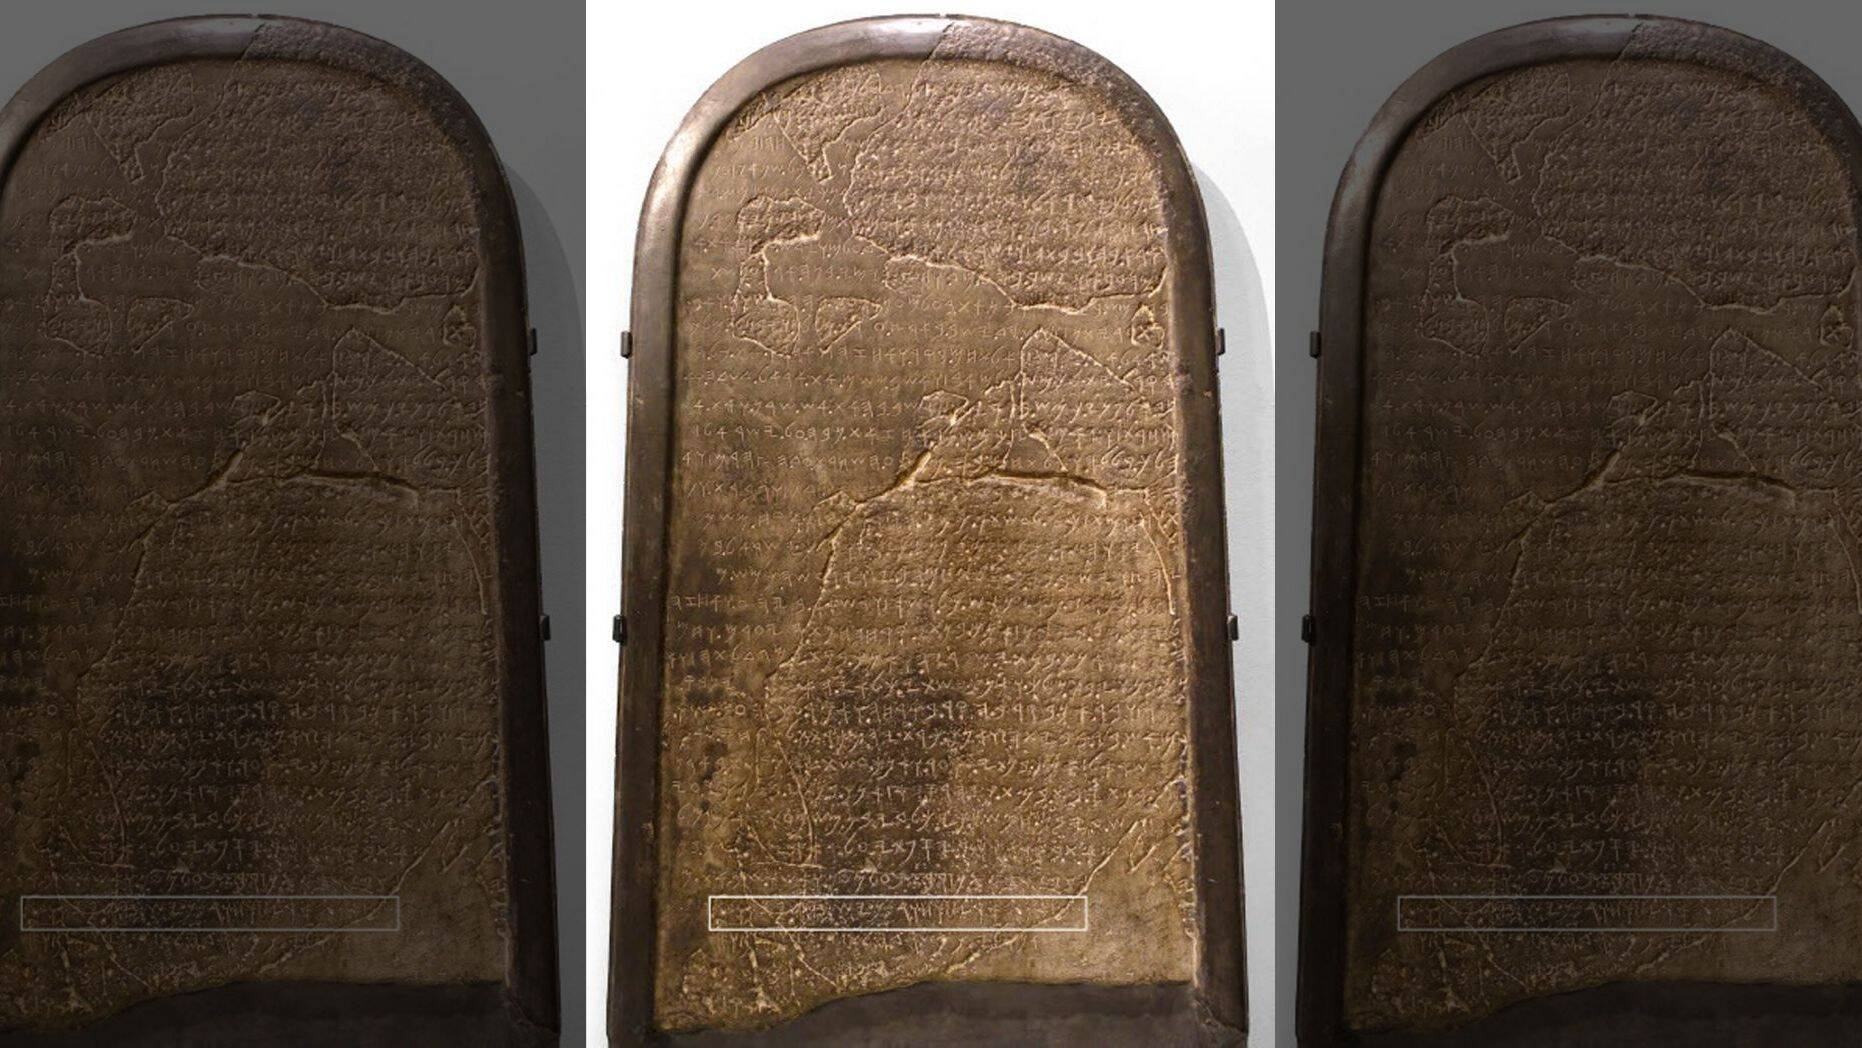 Ancient 3,000-year-old tablet suggests Biblical king may have existed